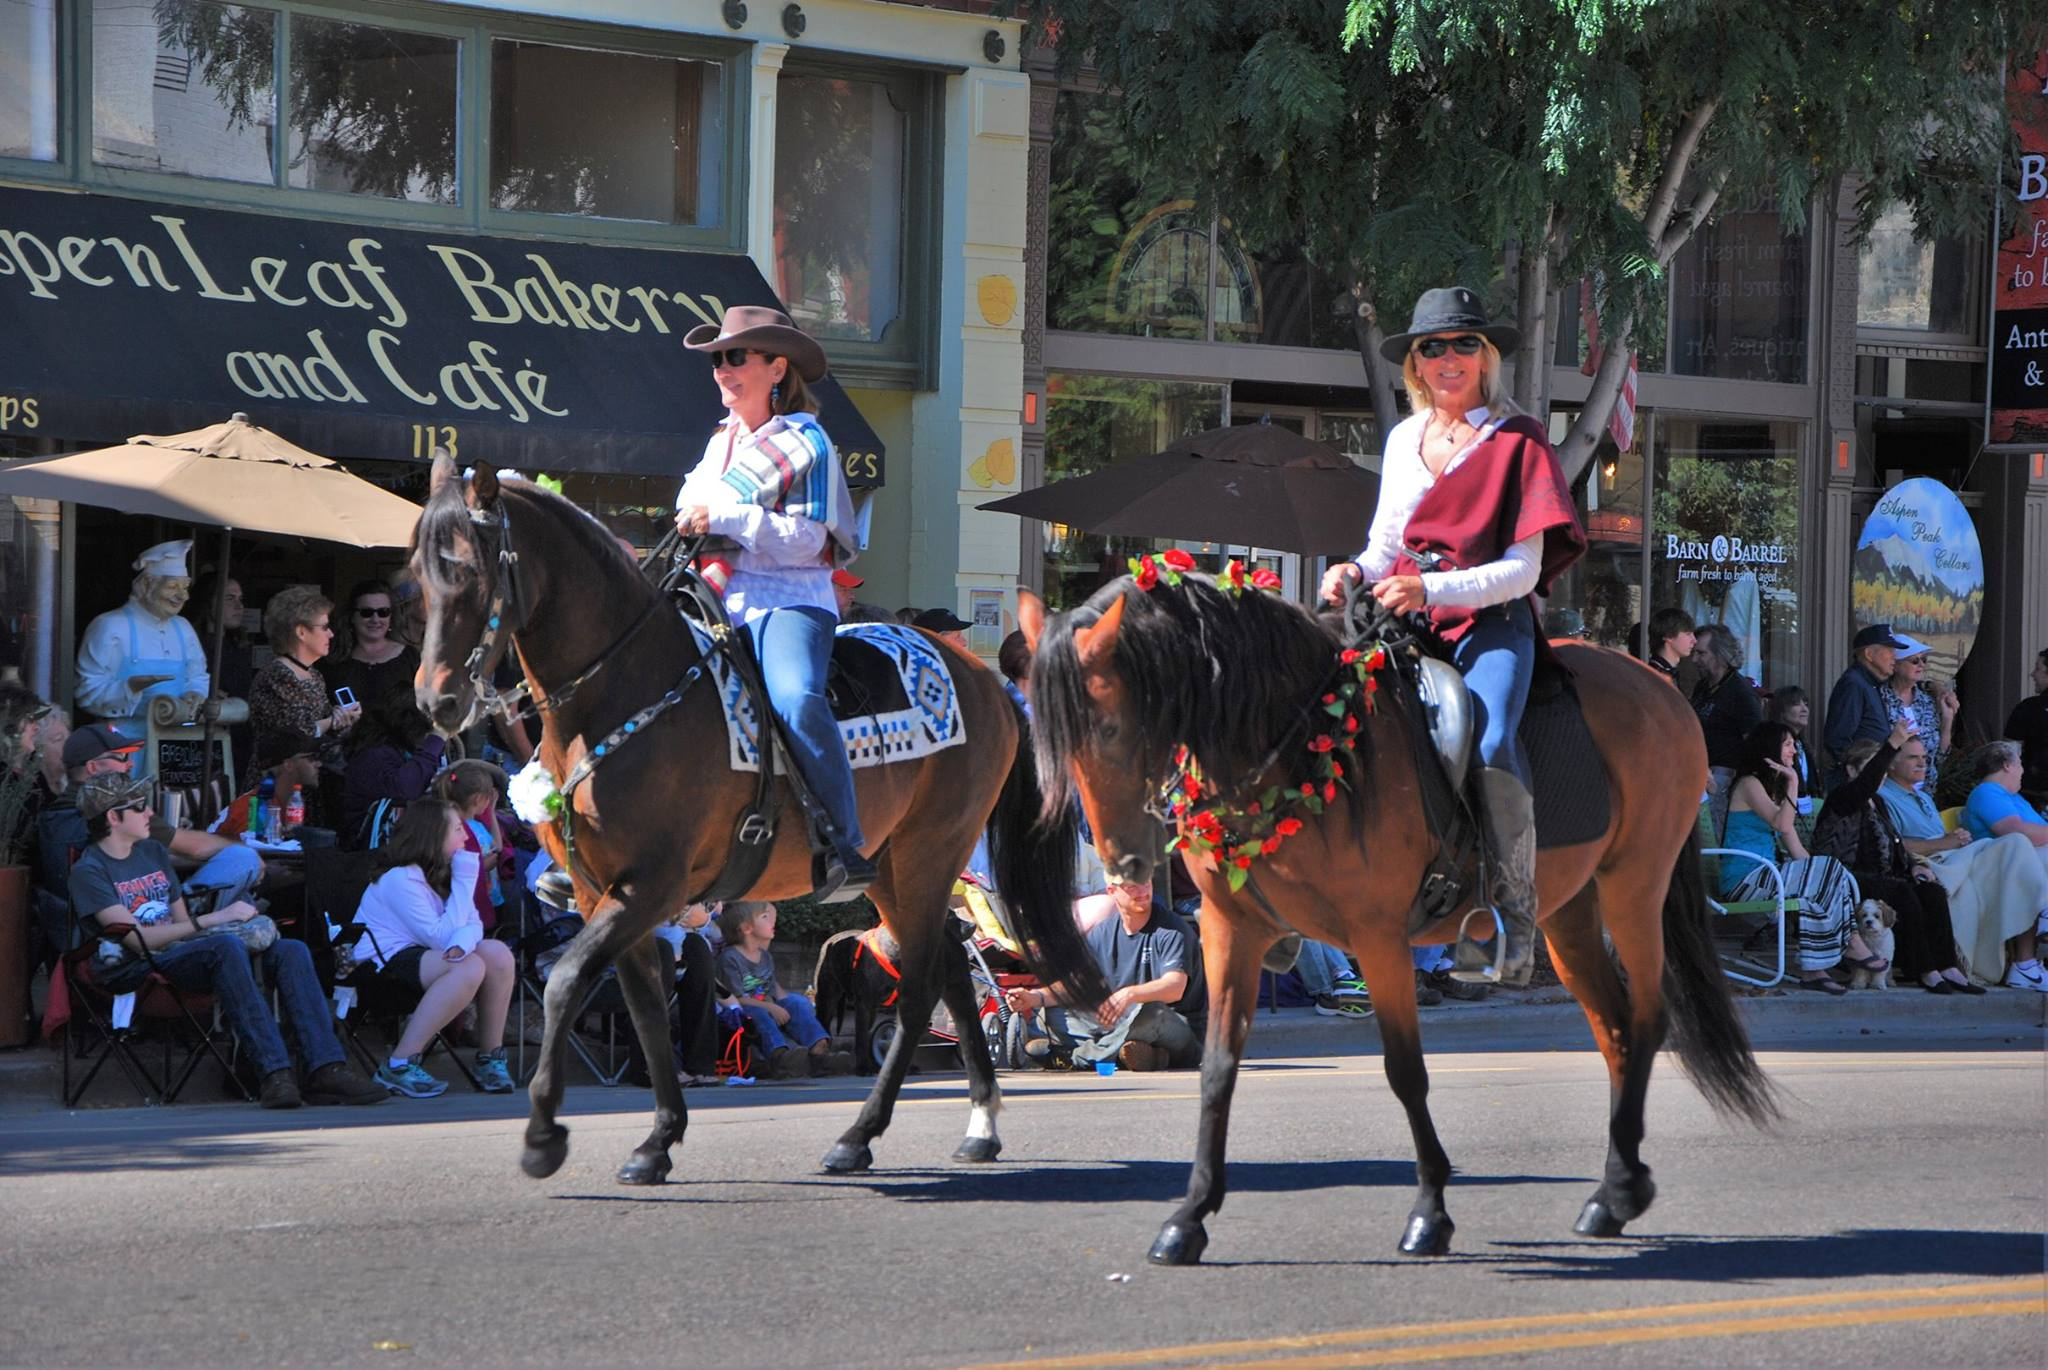 Parade Michelle and Karie.jpg?1475774262